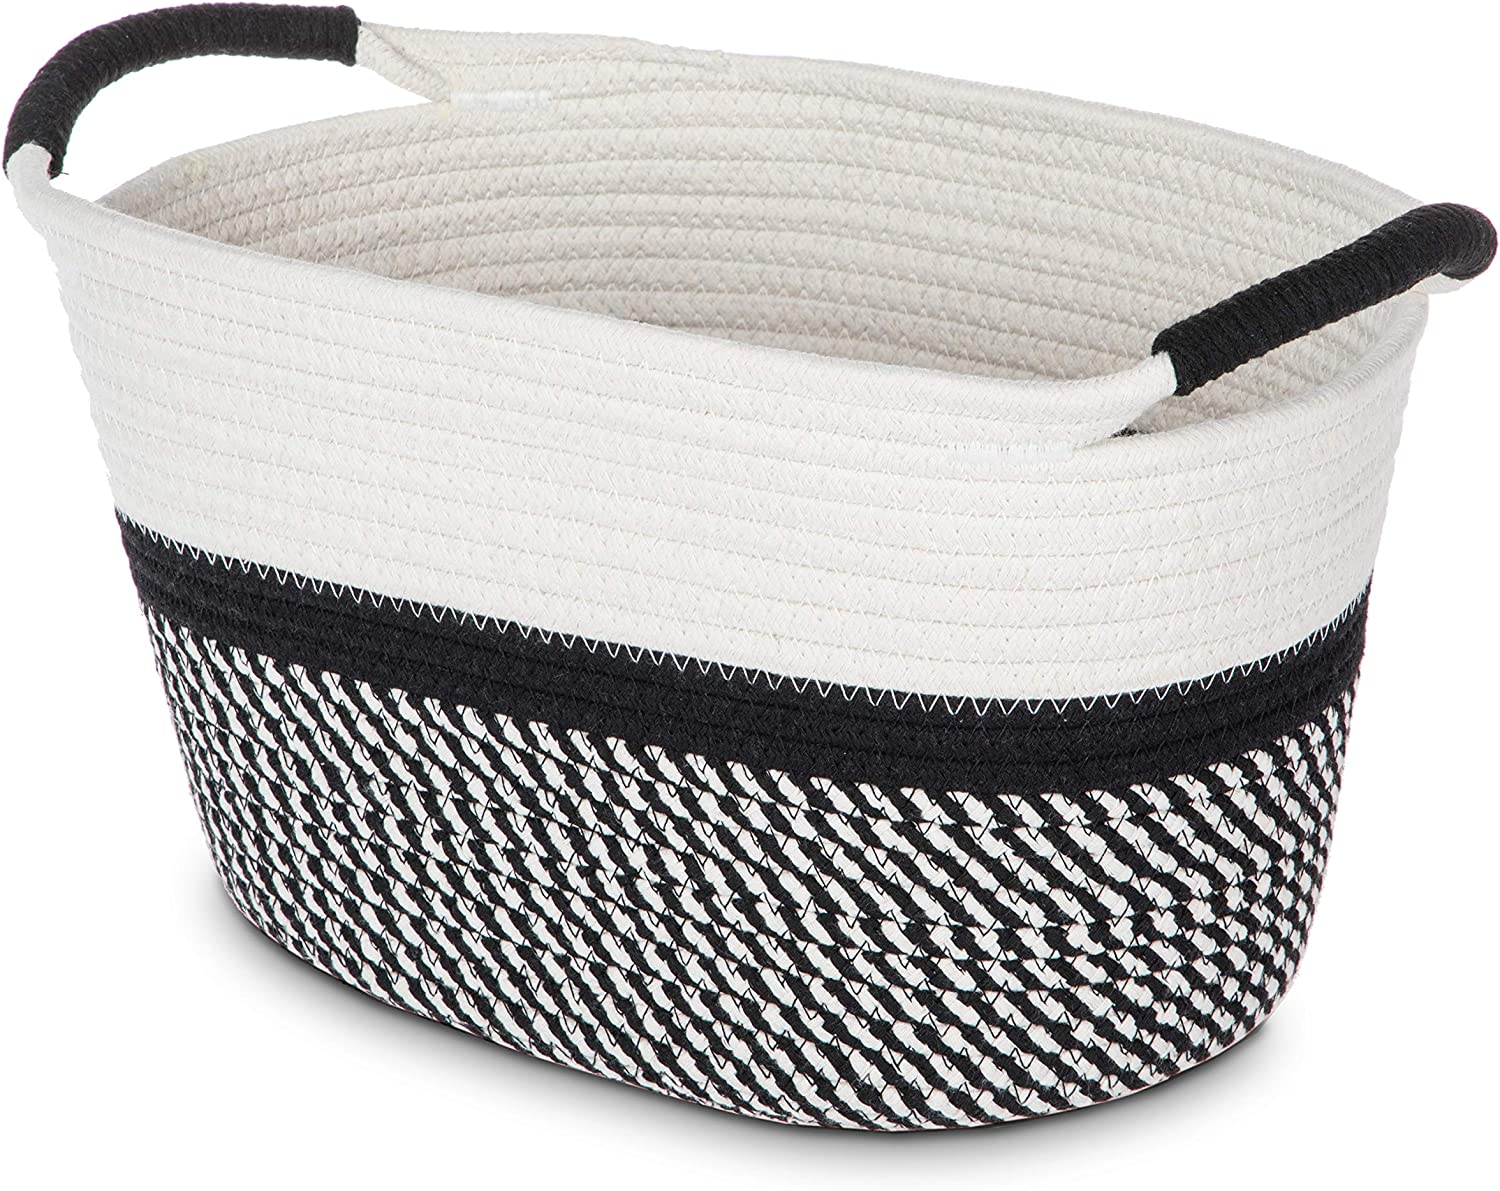 """Home Zone Living Woven Basket for Home Storage with 2 Cotton Rope Handles, 100% Cotton, 13.40"""" x 10.25"""" x 7.90"""""""